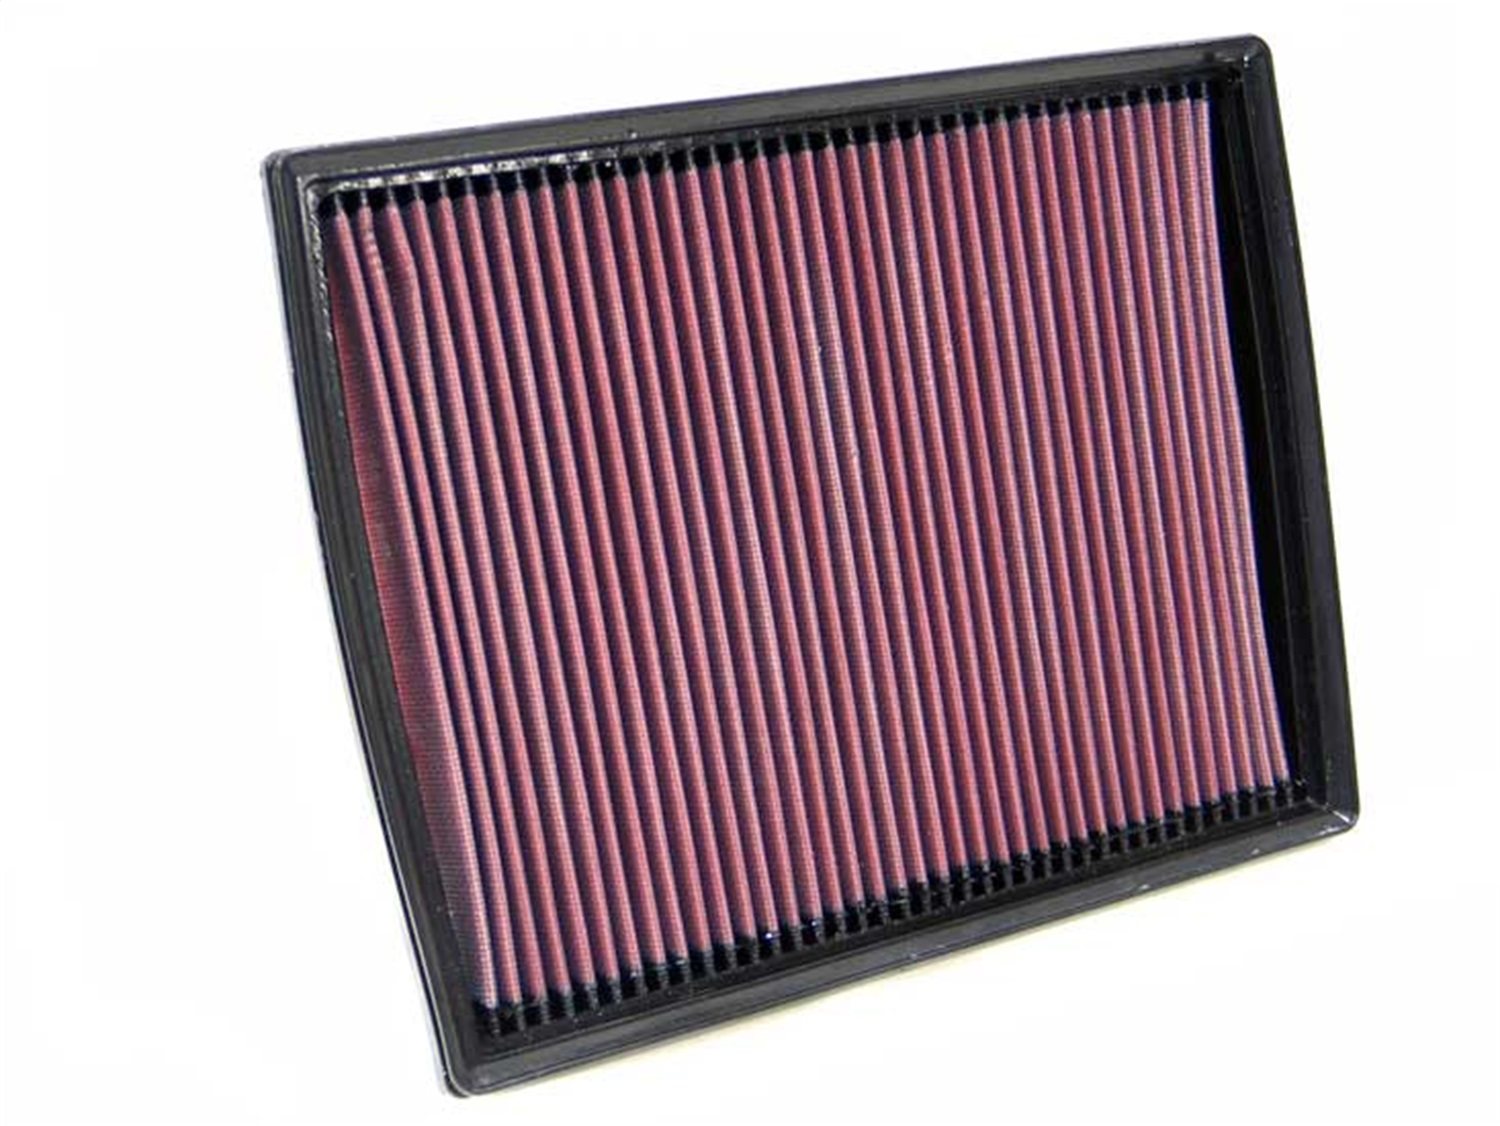 K&N Filters 33-2787 Air Filter Fits 08 Astra 33-2787